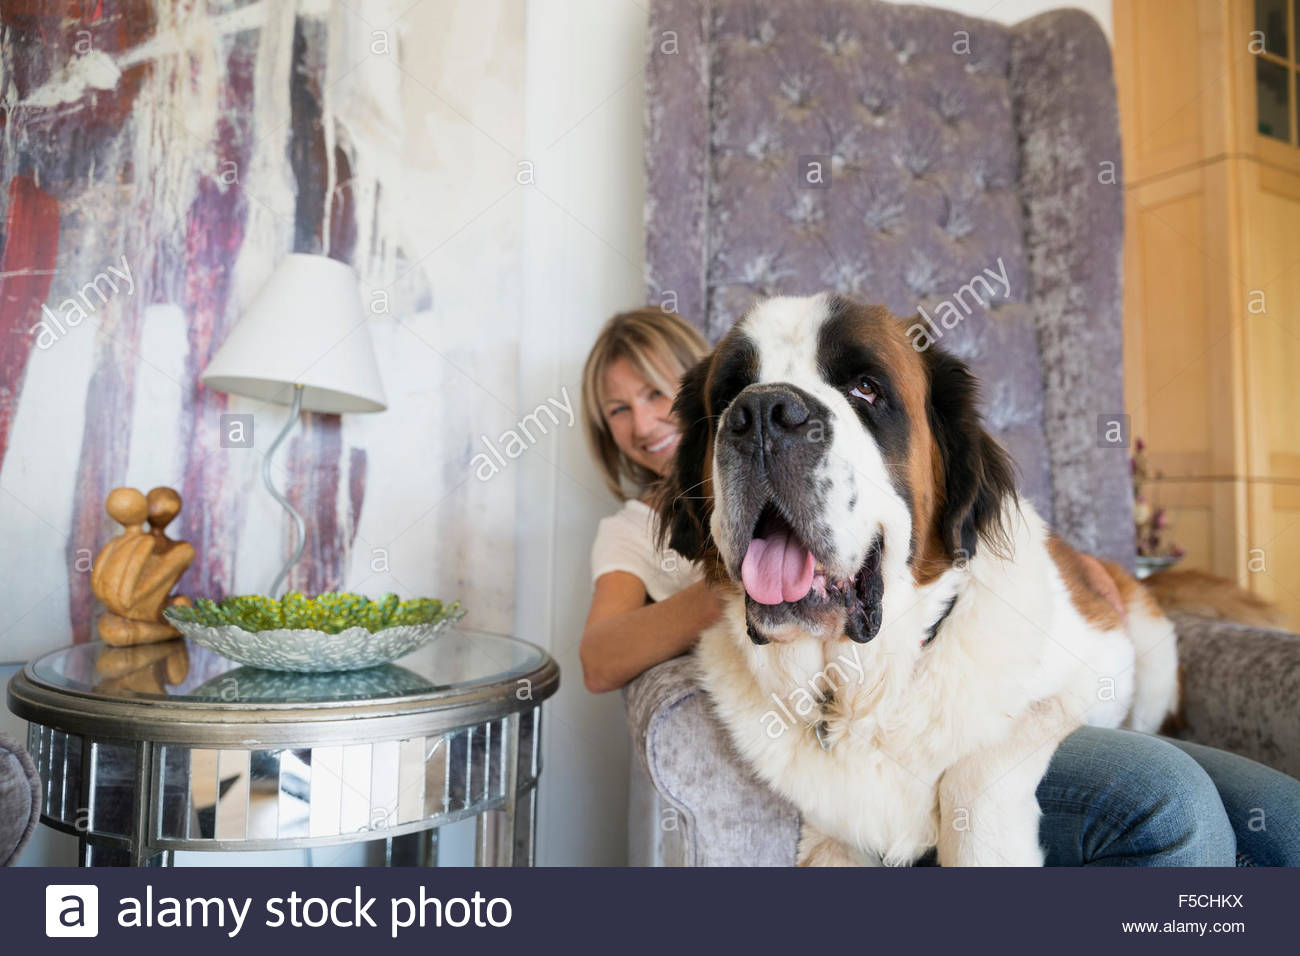 Saint Bernard Dog Sitting On Woman S Lap Armchair Stock